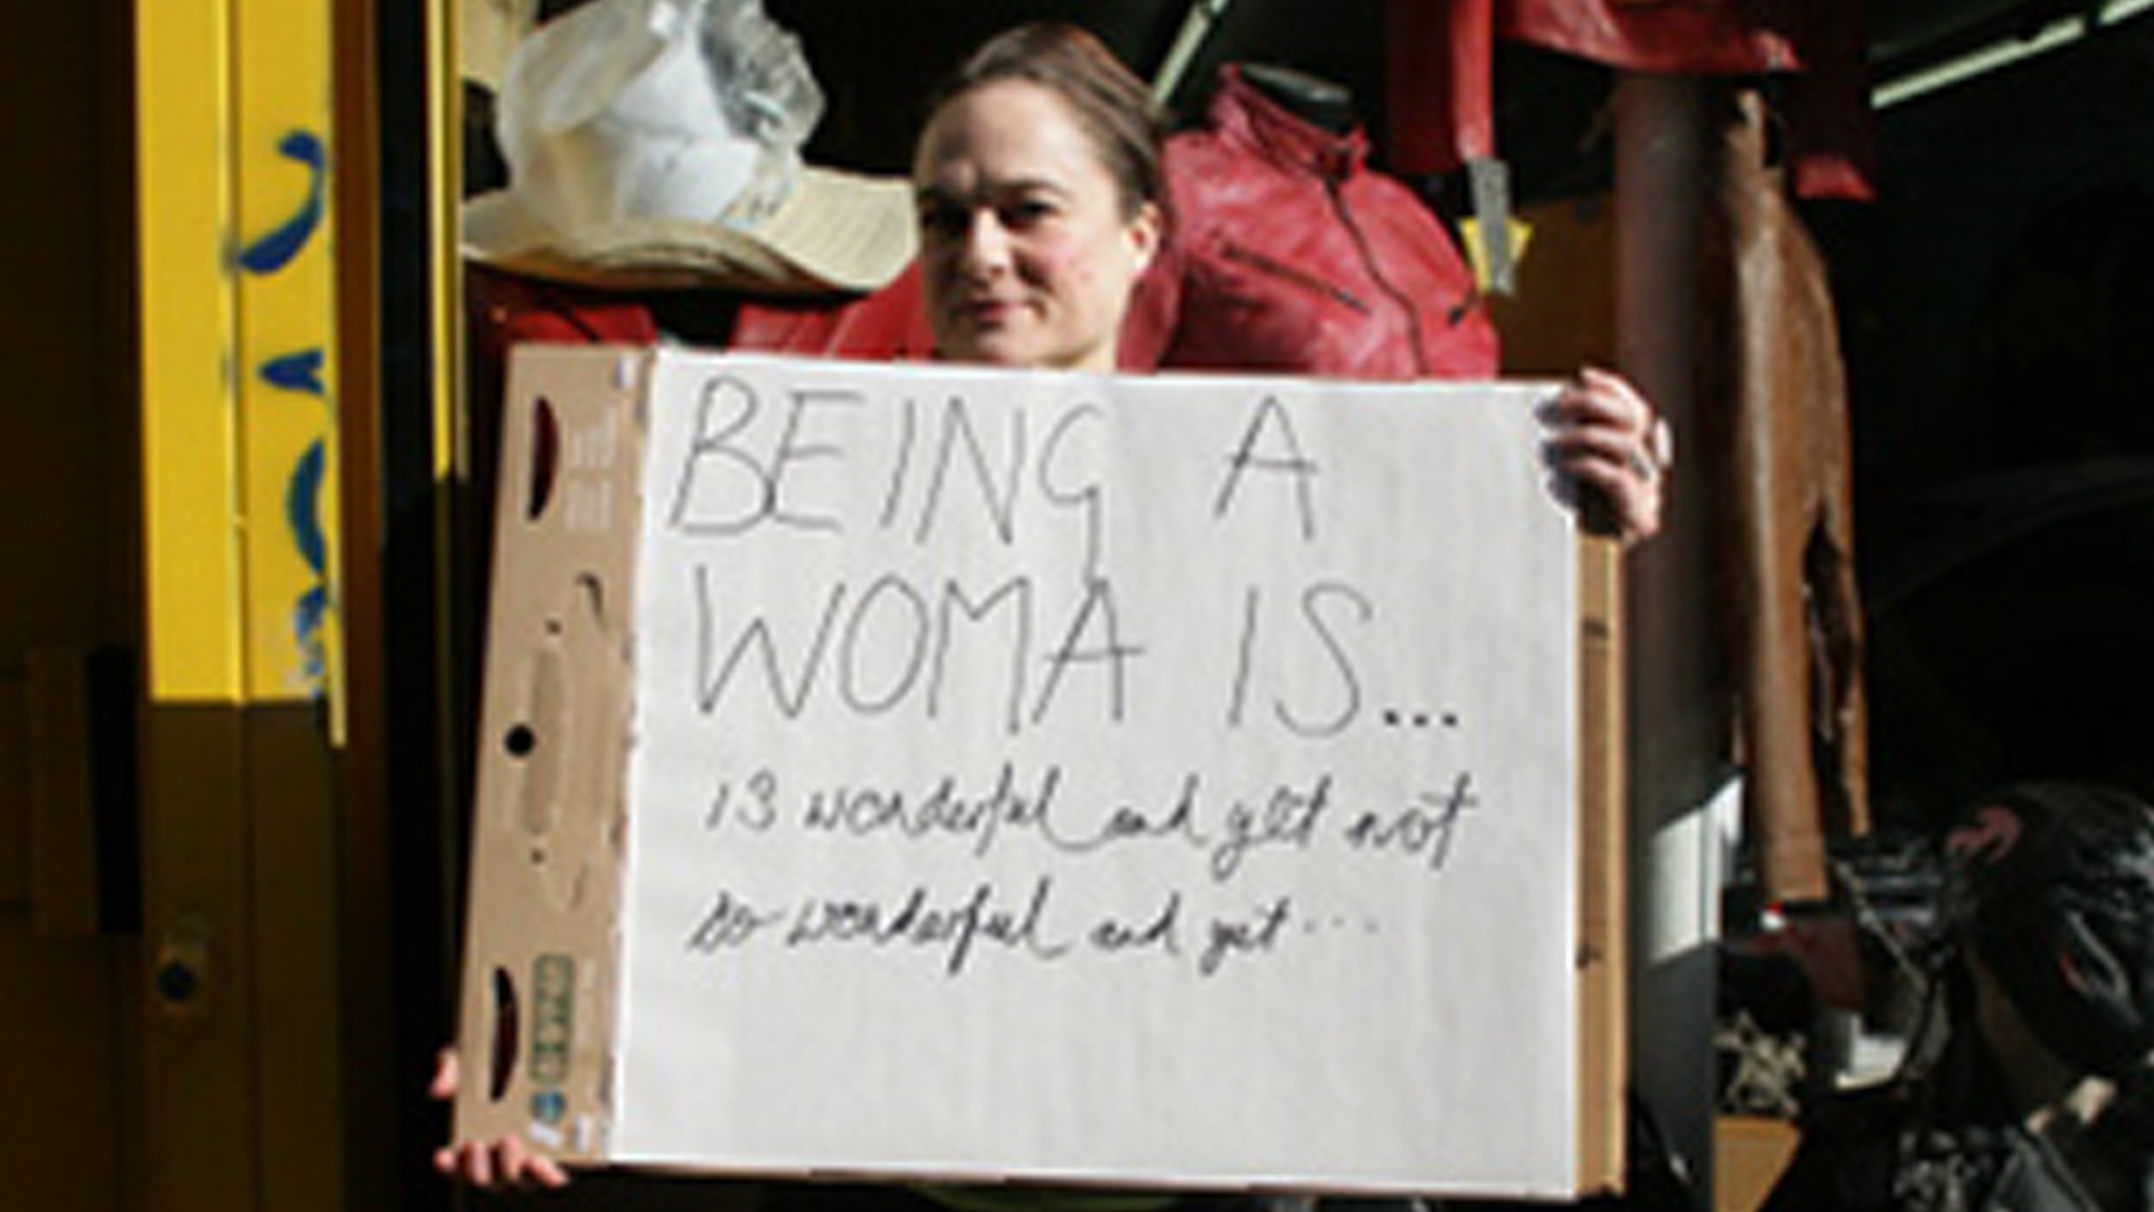 Being a woman is: Wonderful and yet not so wonderful and yet...